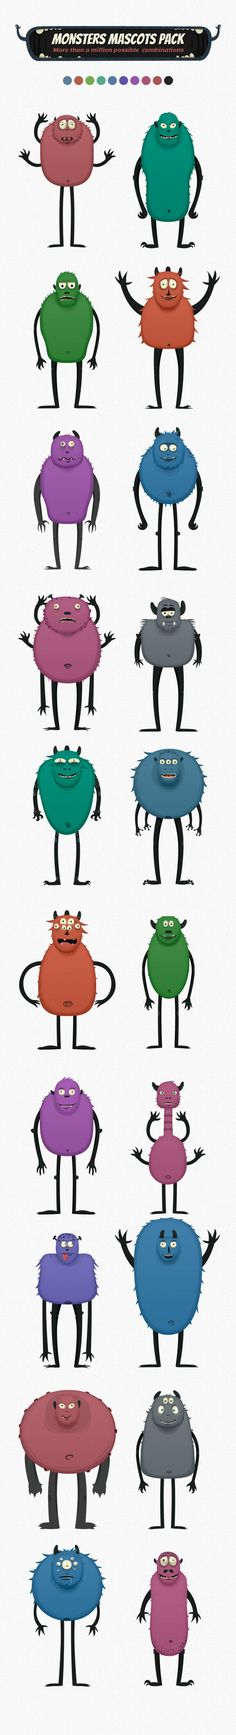 Monsters Characters #monster #character